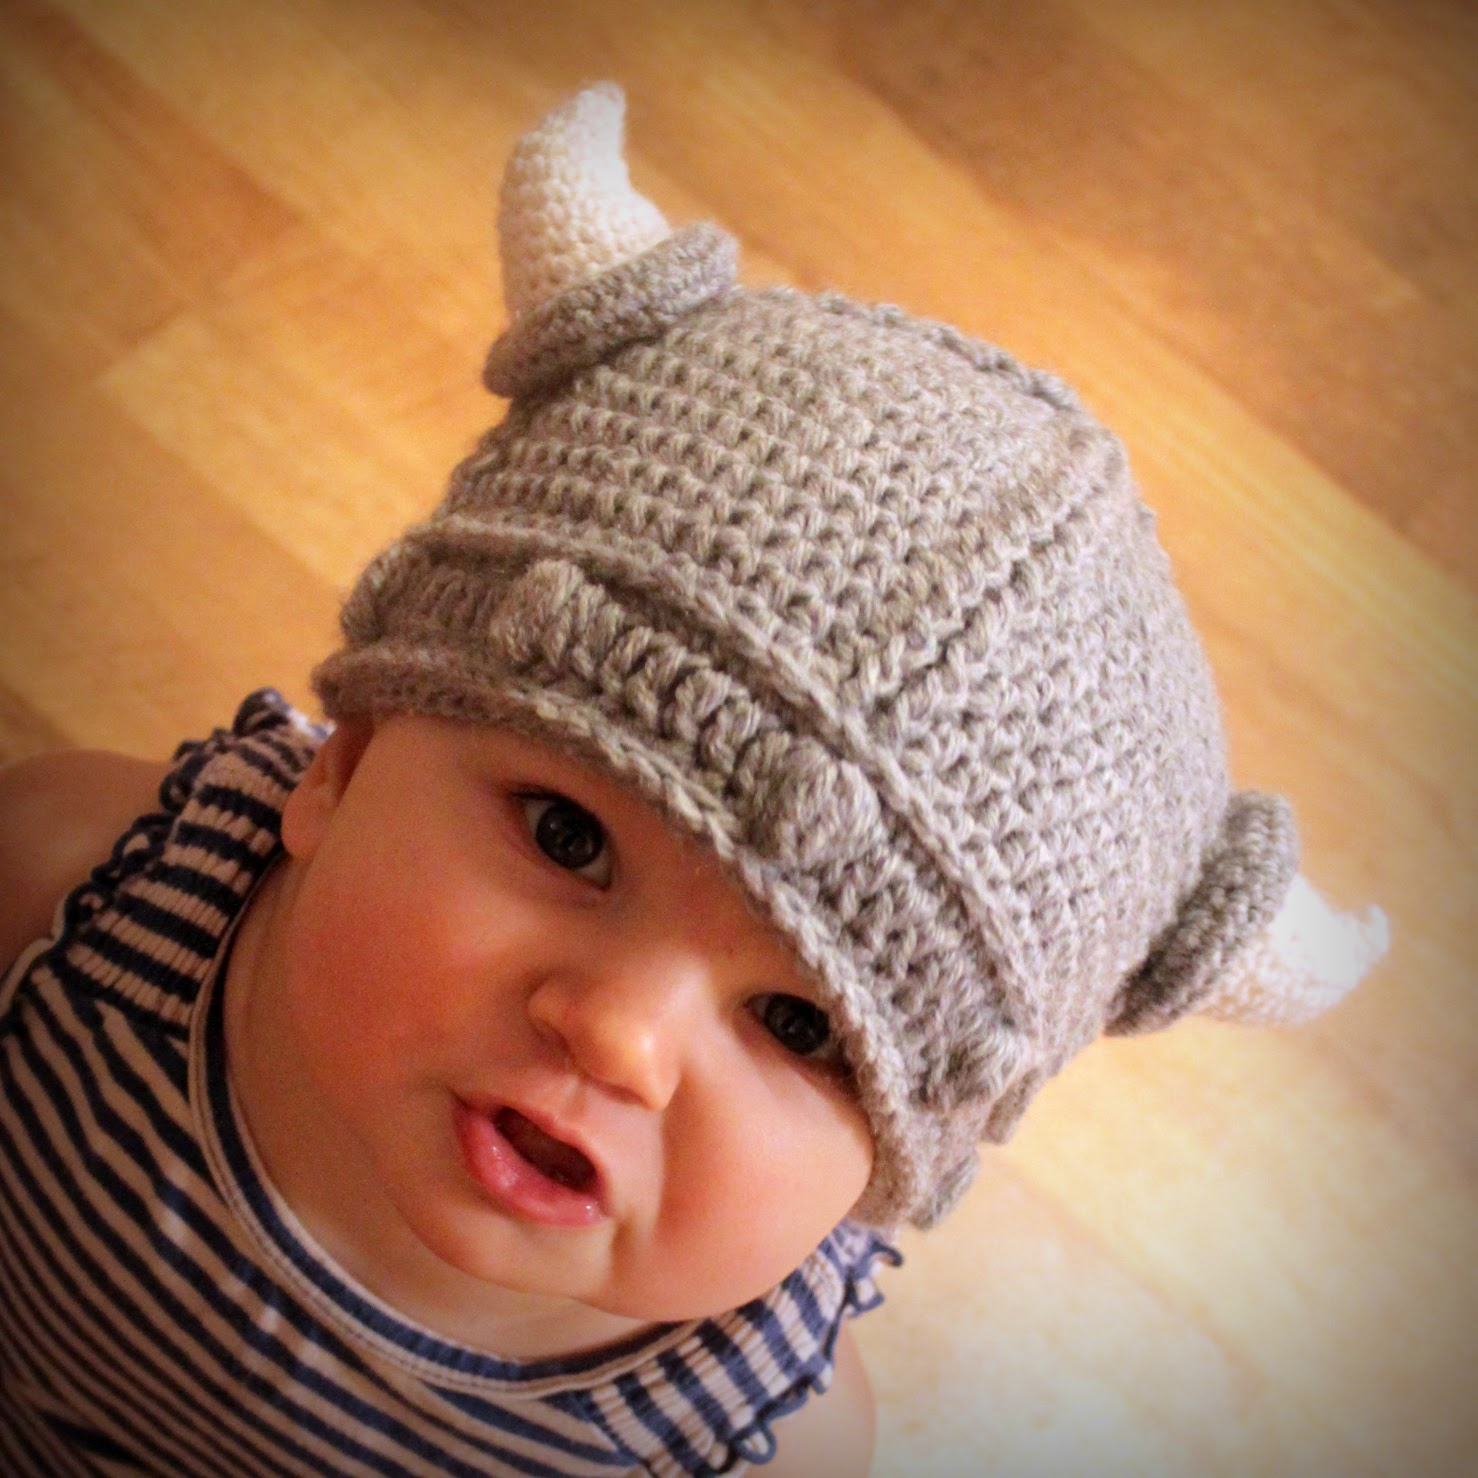 Free Pattern Crochet Viking Hat : Crochet For Free: Lael Viking Hat (Size Newborn - Adult)